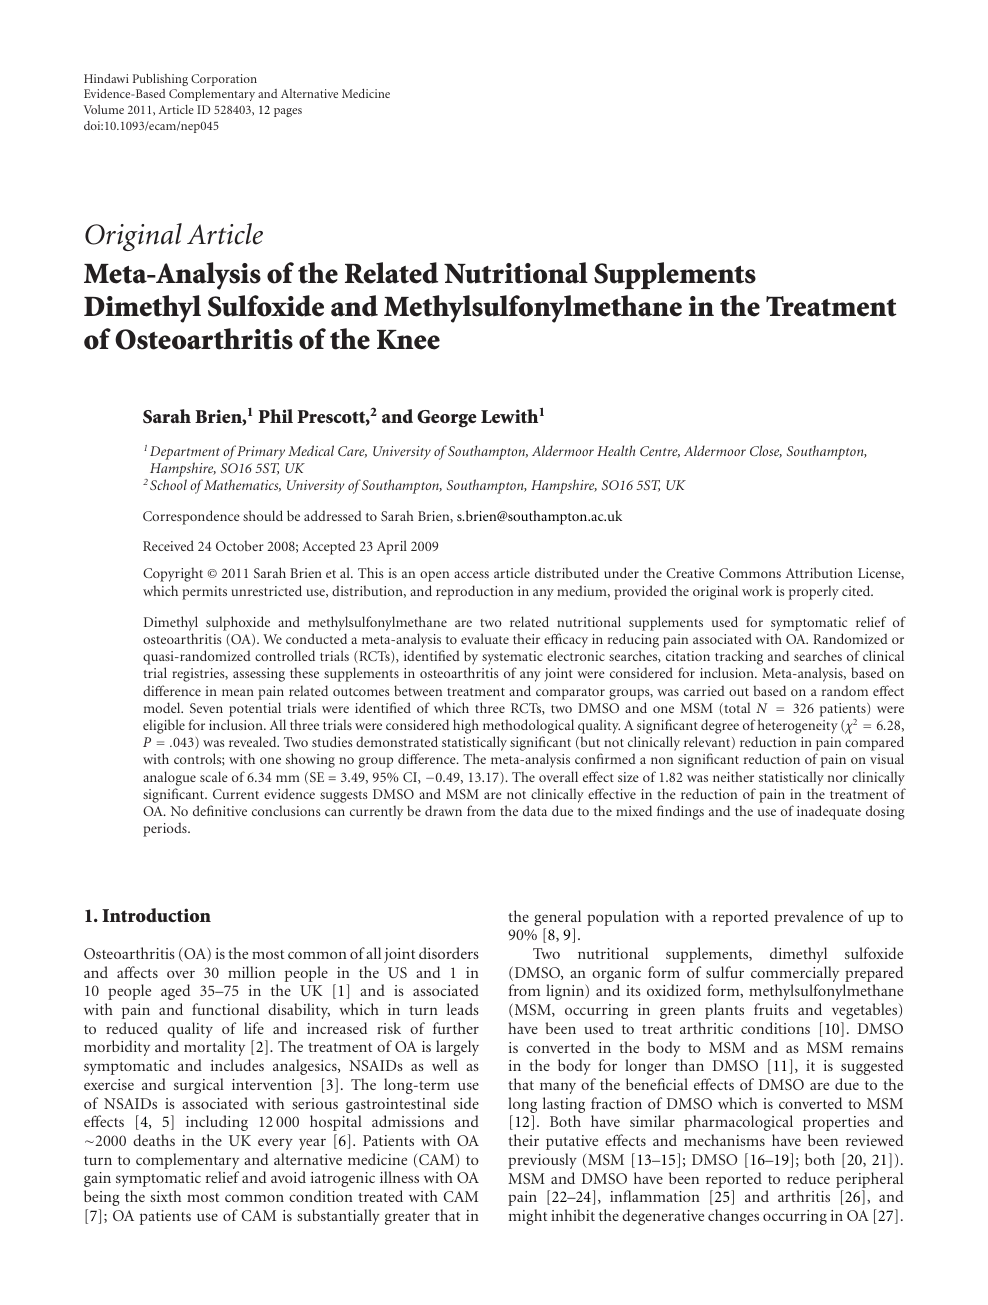 Meta-Analysis of the Related Nutritional Supplements Dimethyl